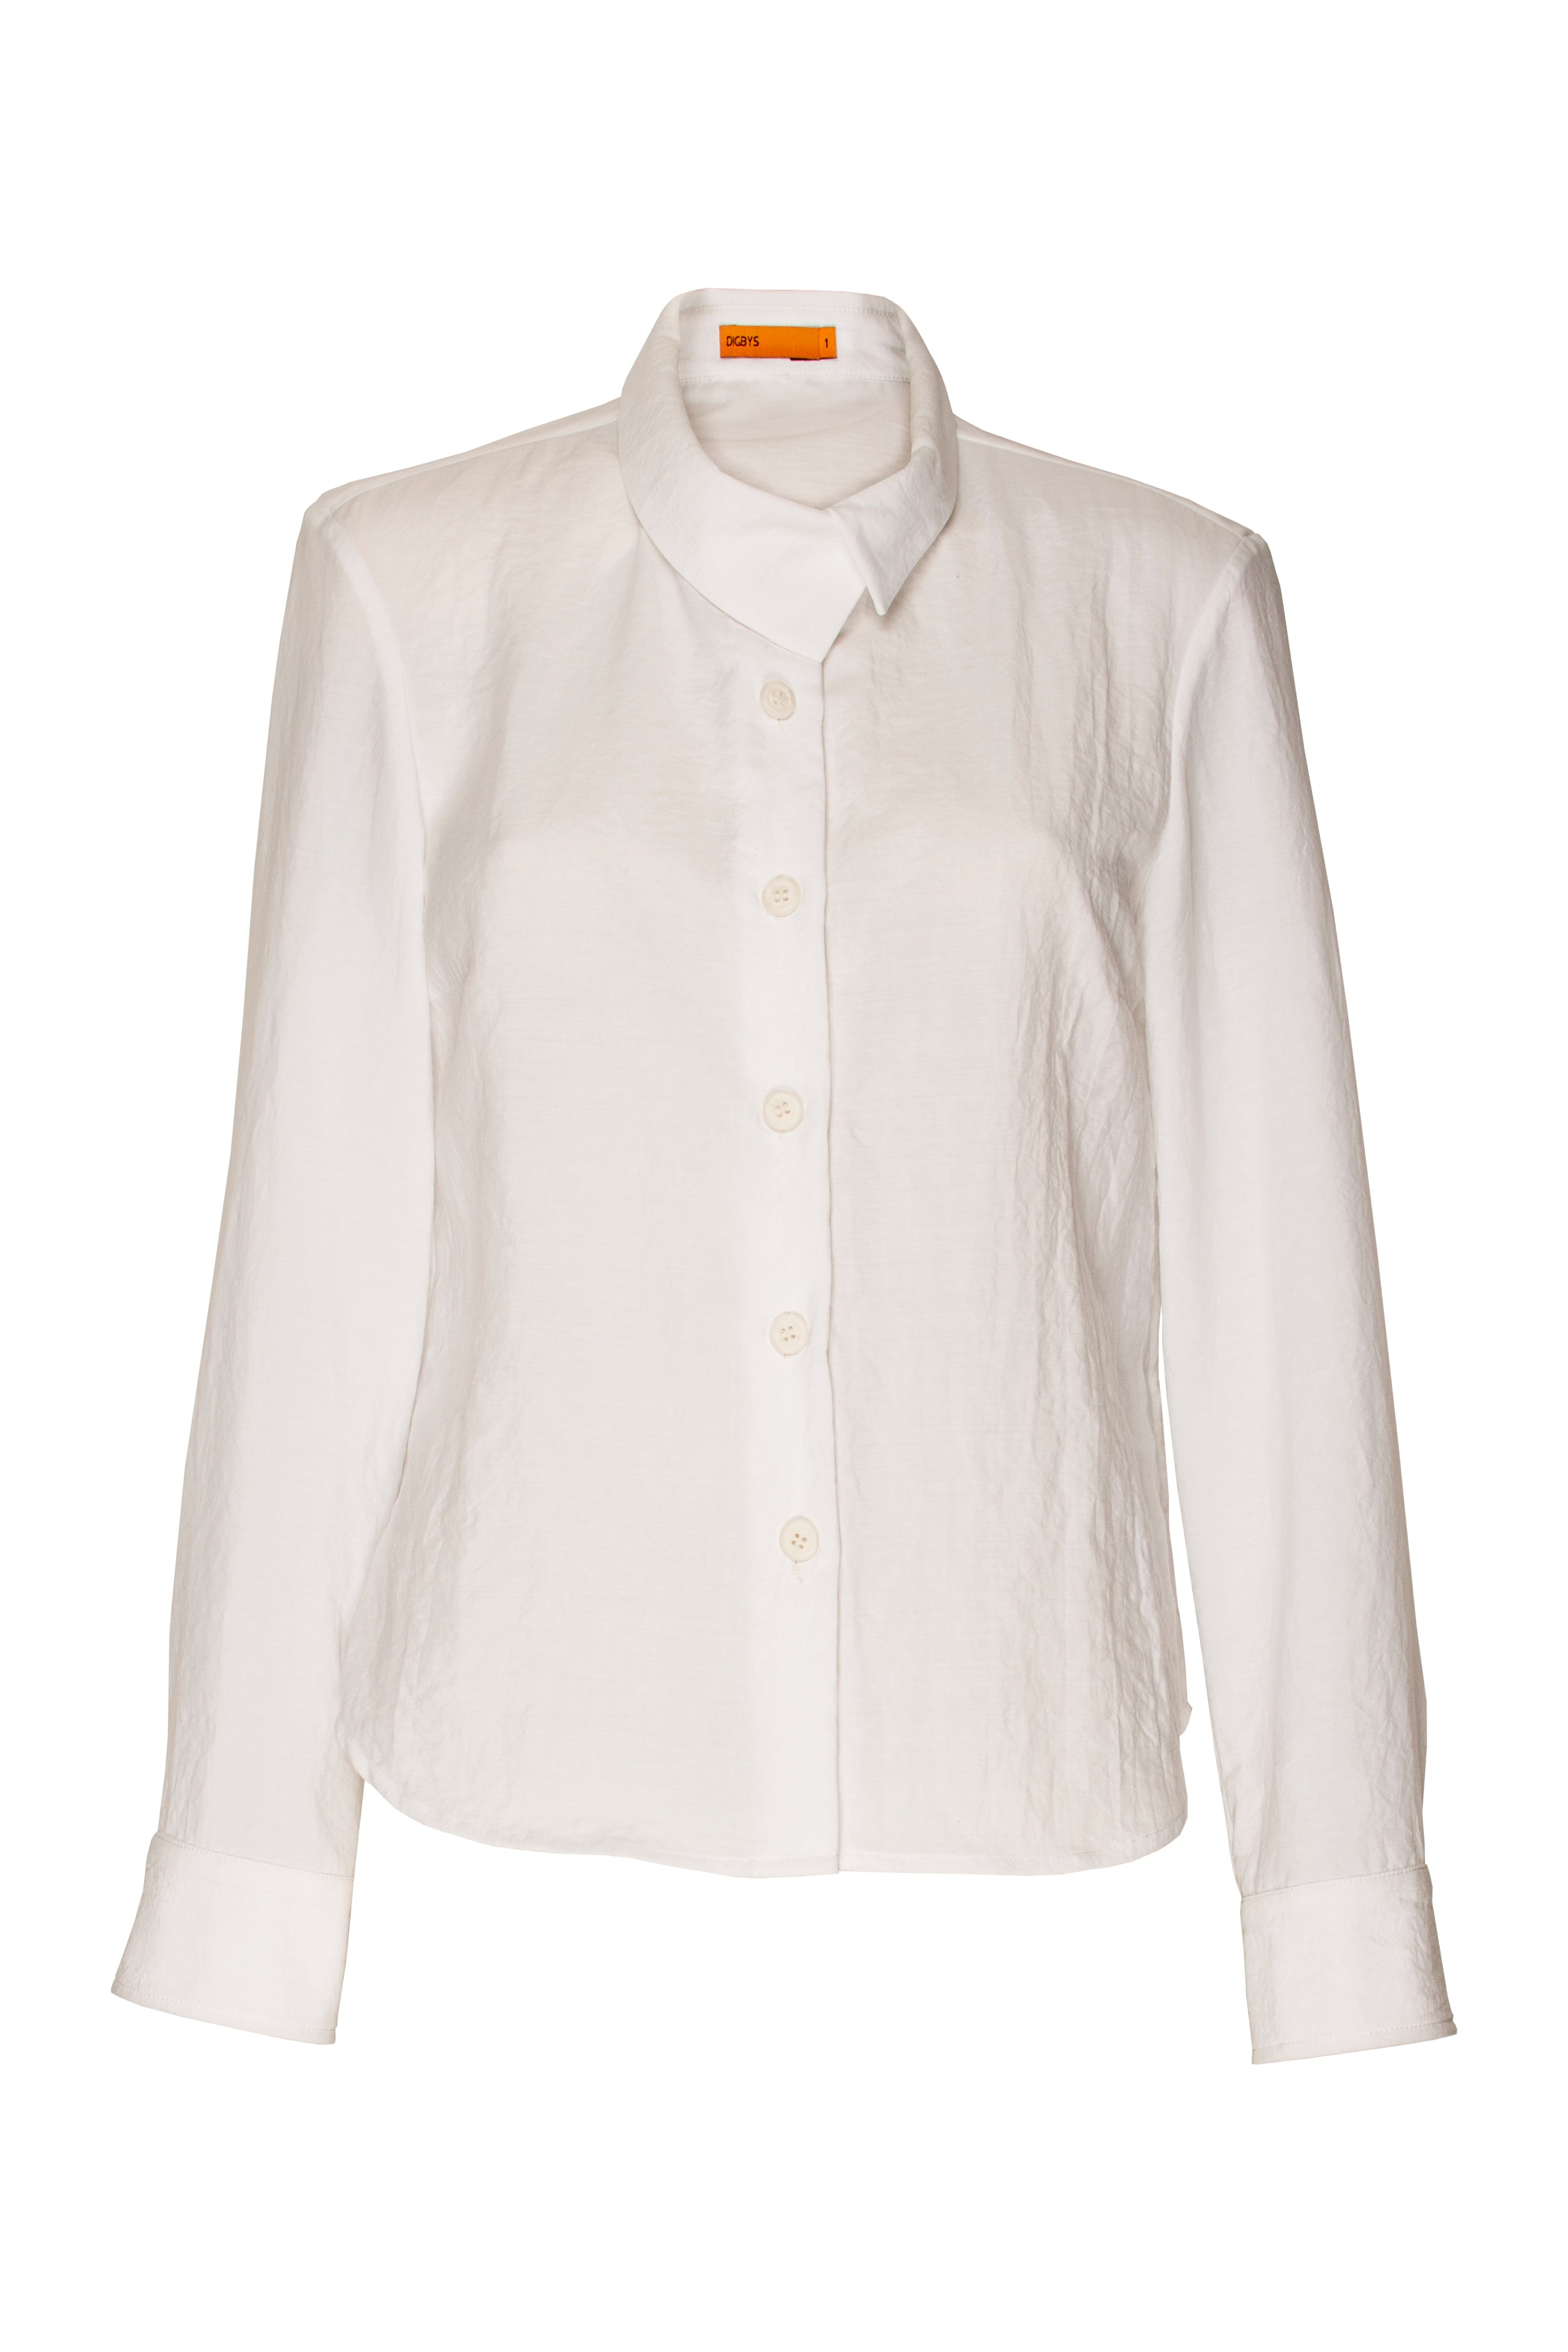 White Cross Over Collar Shirt 3267